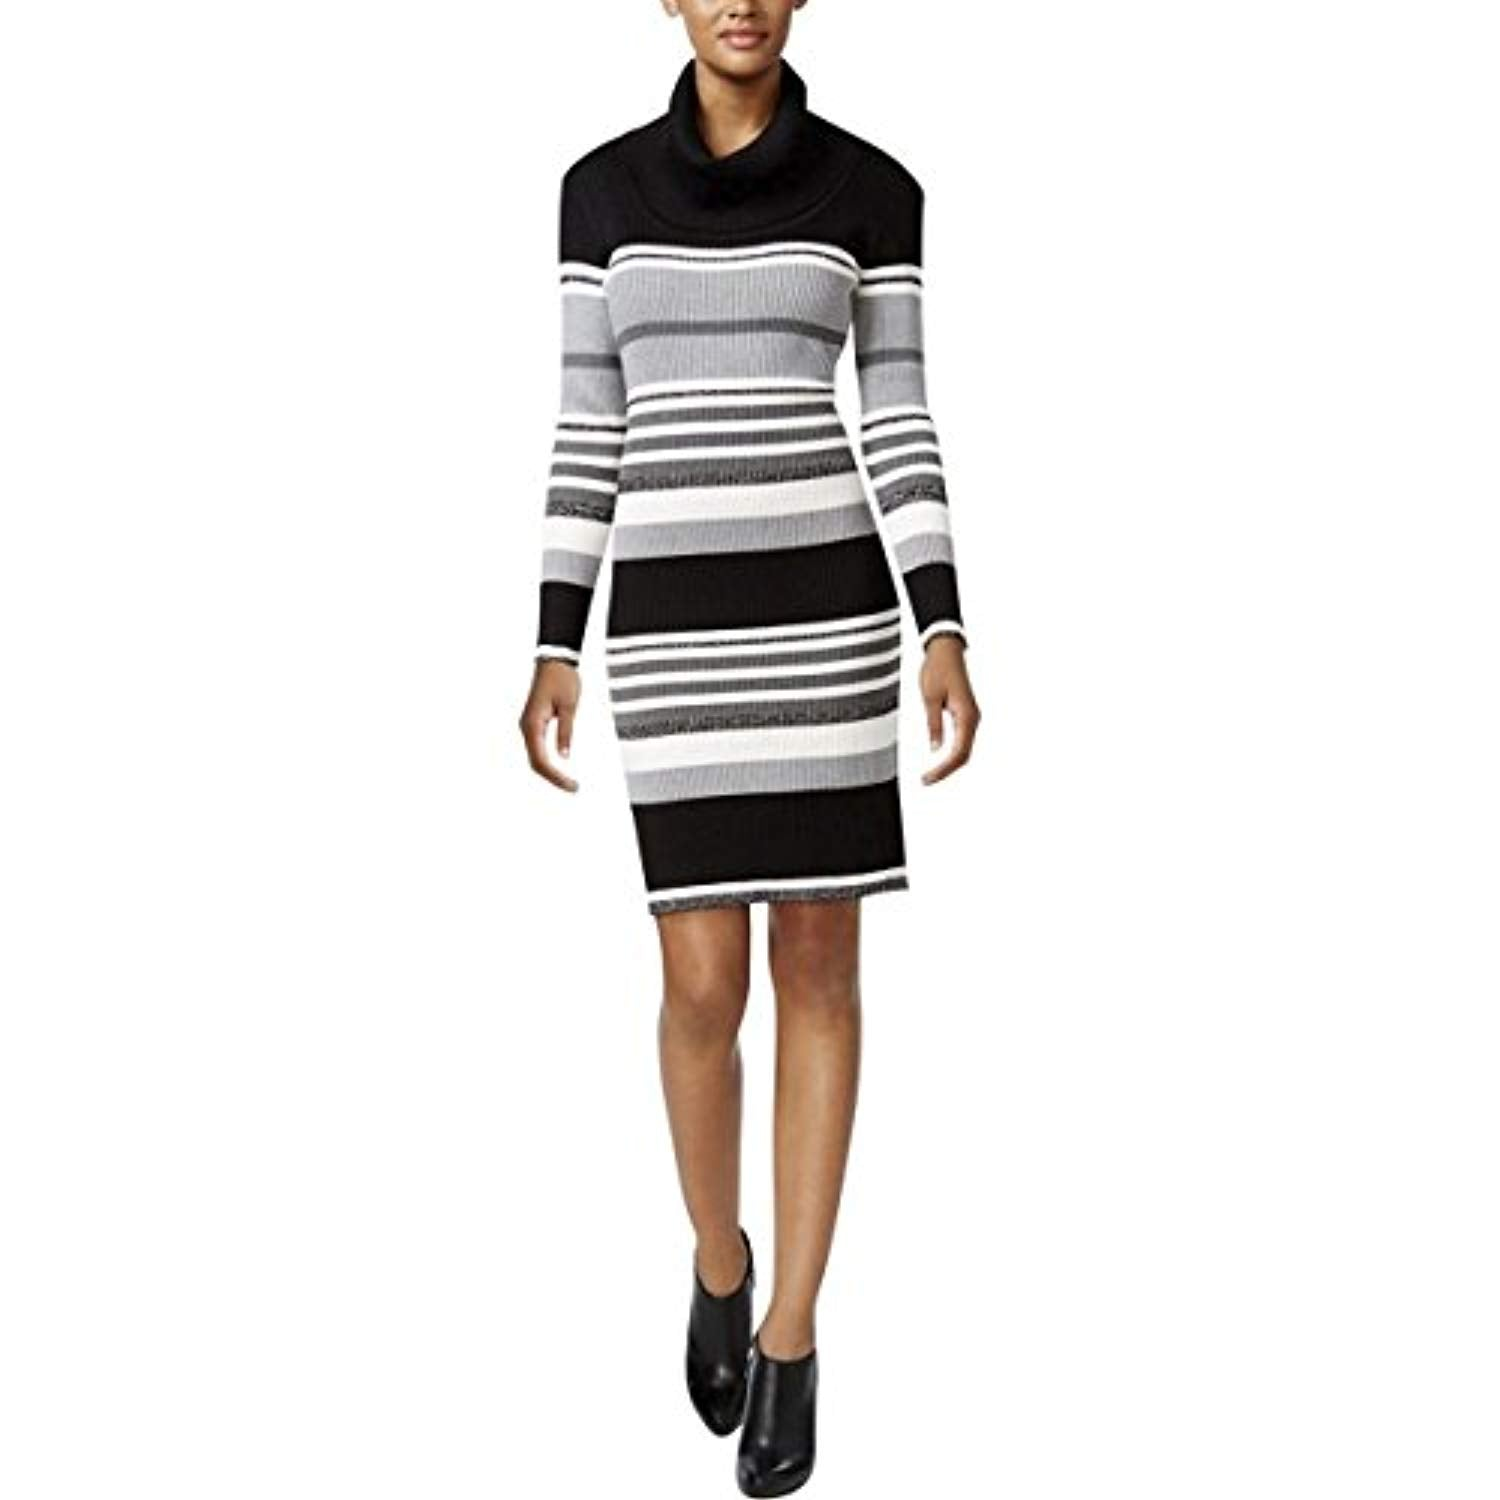 4e85d1fcb8b2 Connected Apparel Gray White Striped Small Sweater Dress – WildDealz